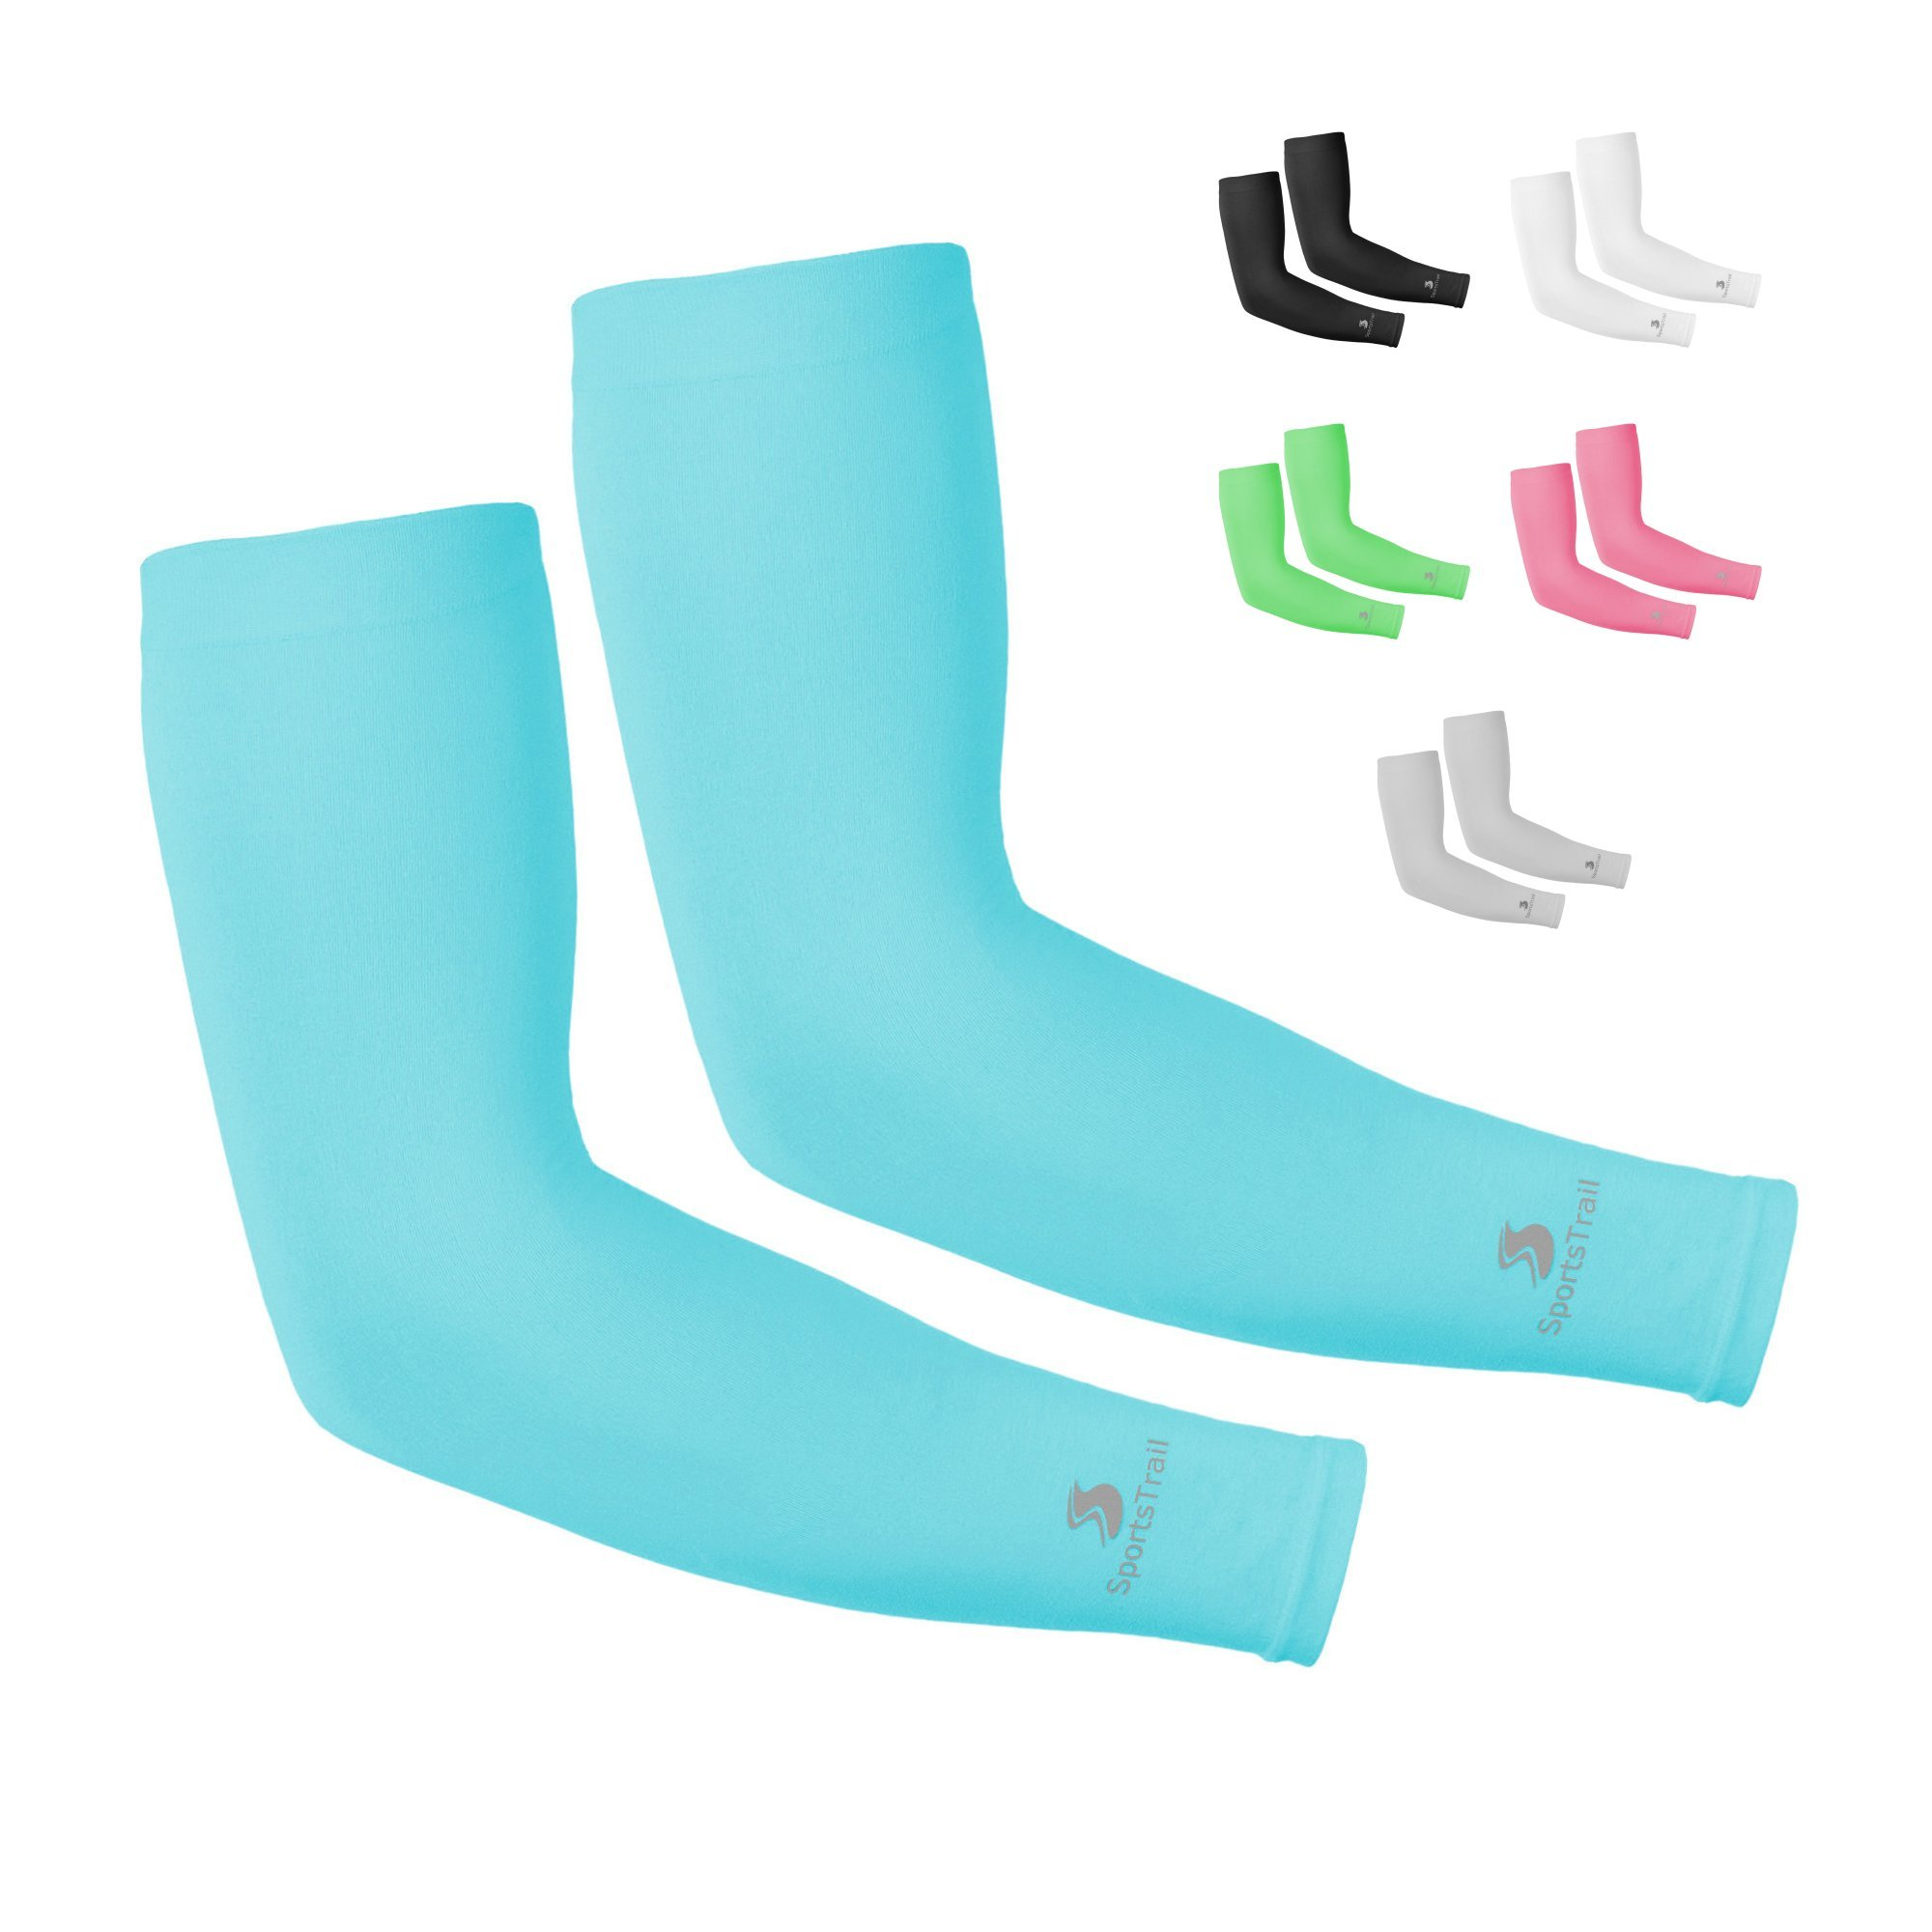 SportsTrail Arm Sleeves for Men & Women, Tatoo Cover up Sleeves to Cover Arms, 1 Pair (Turquoise Blue)